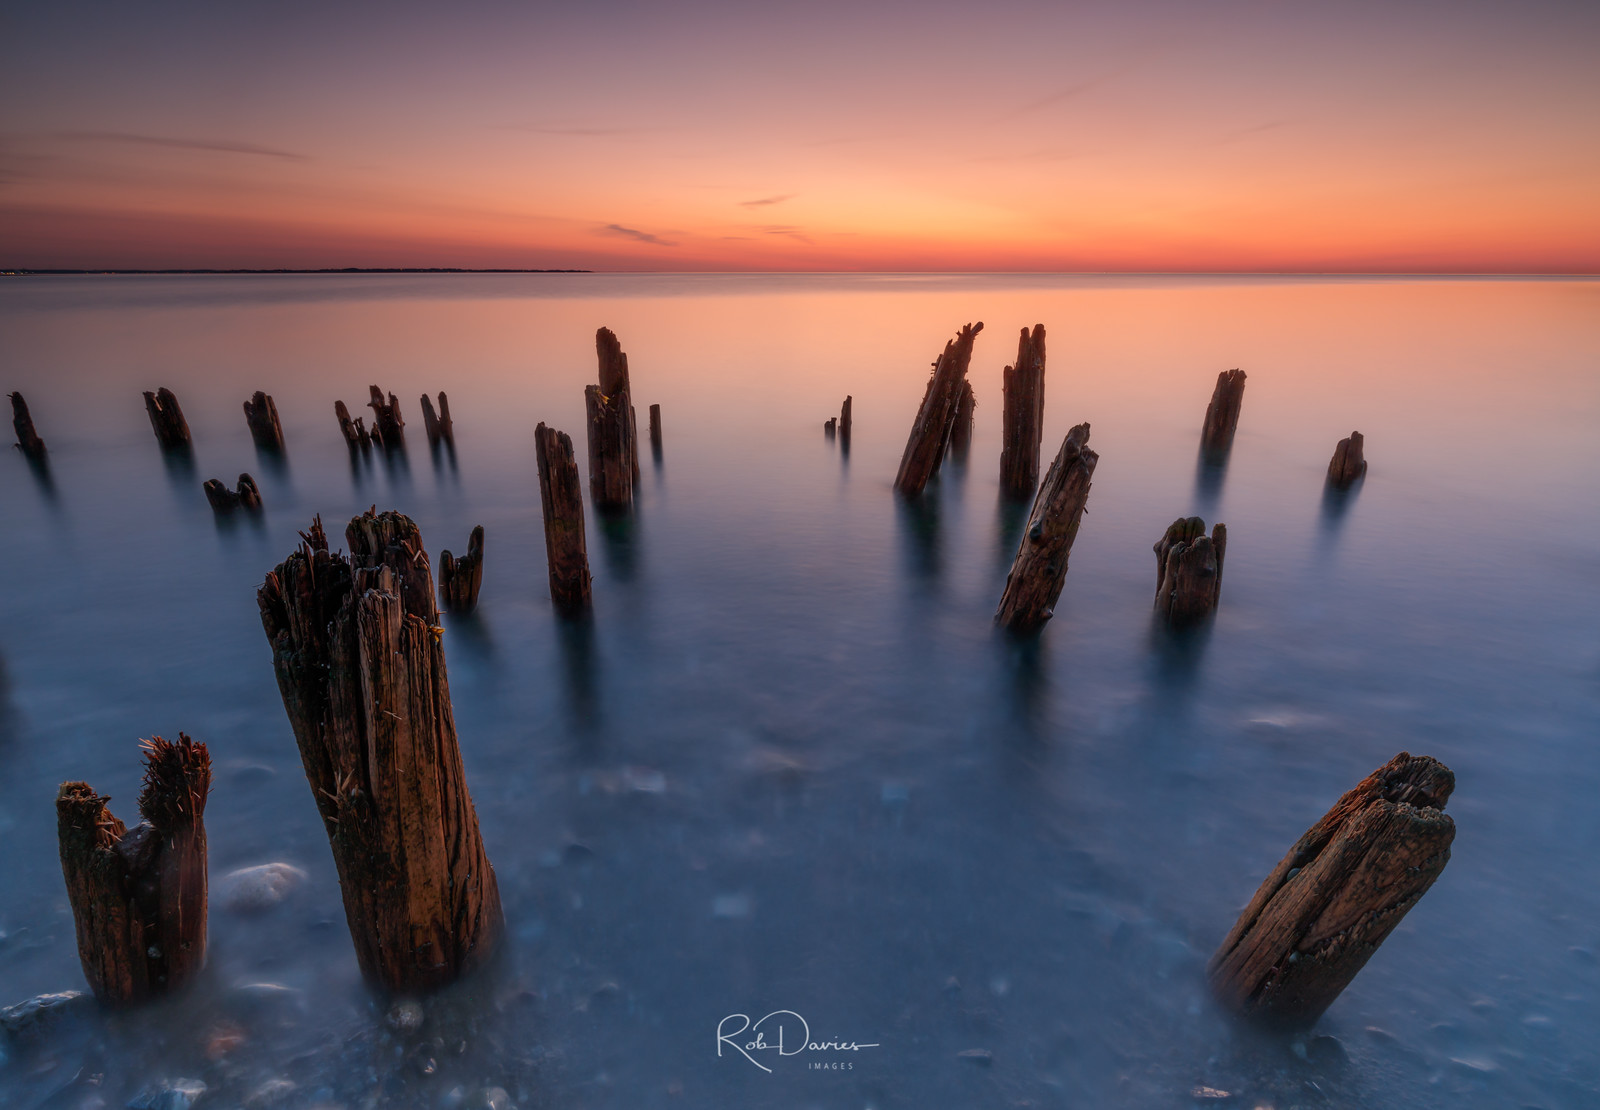 Misty ocean surrounding wooden posts at sunset